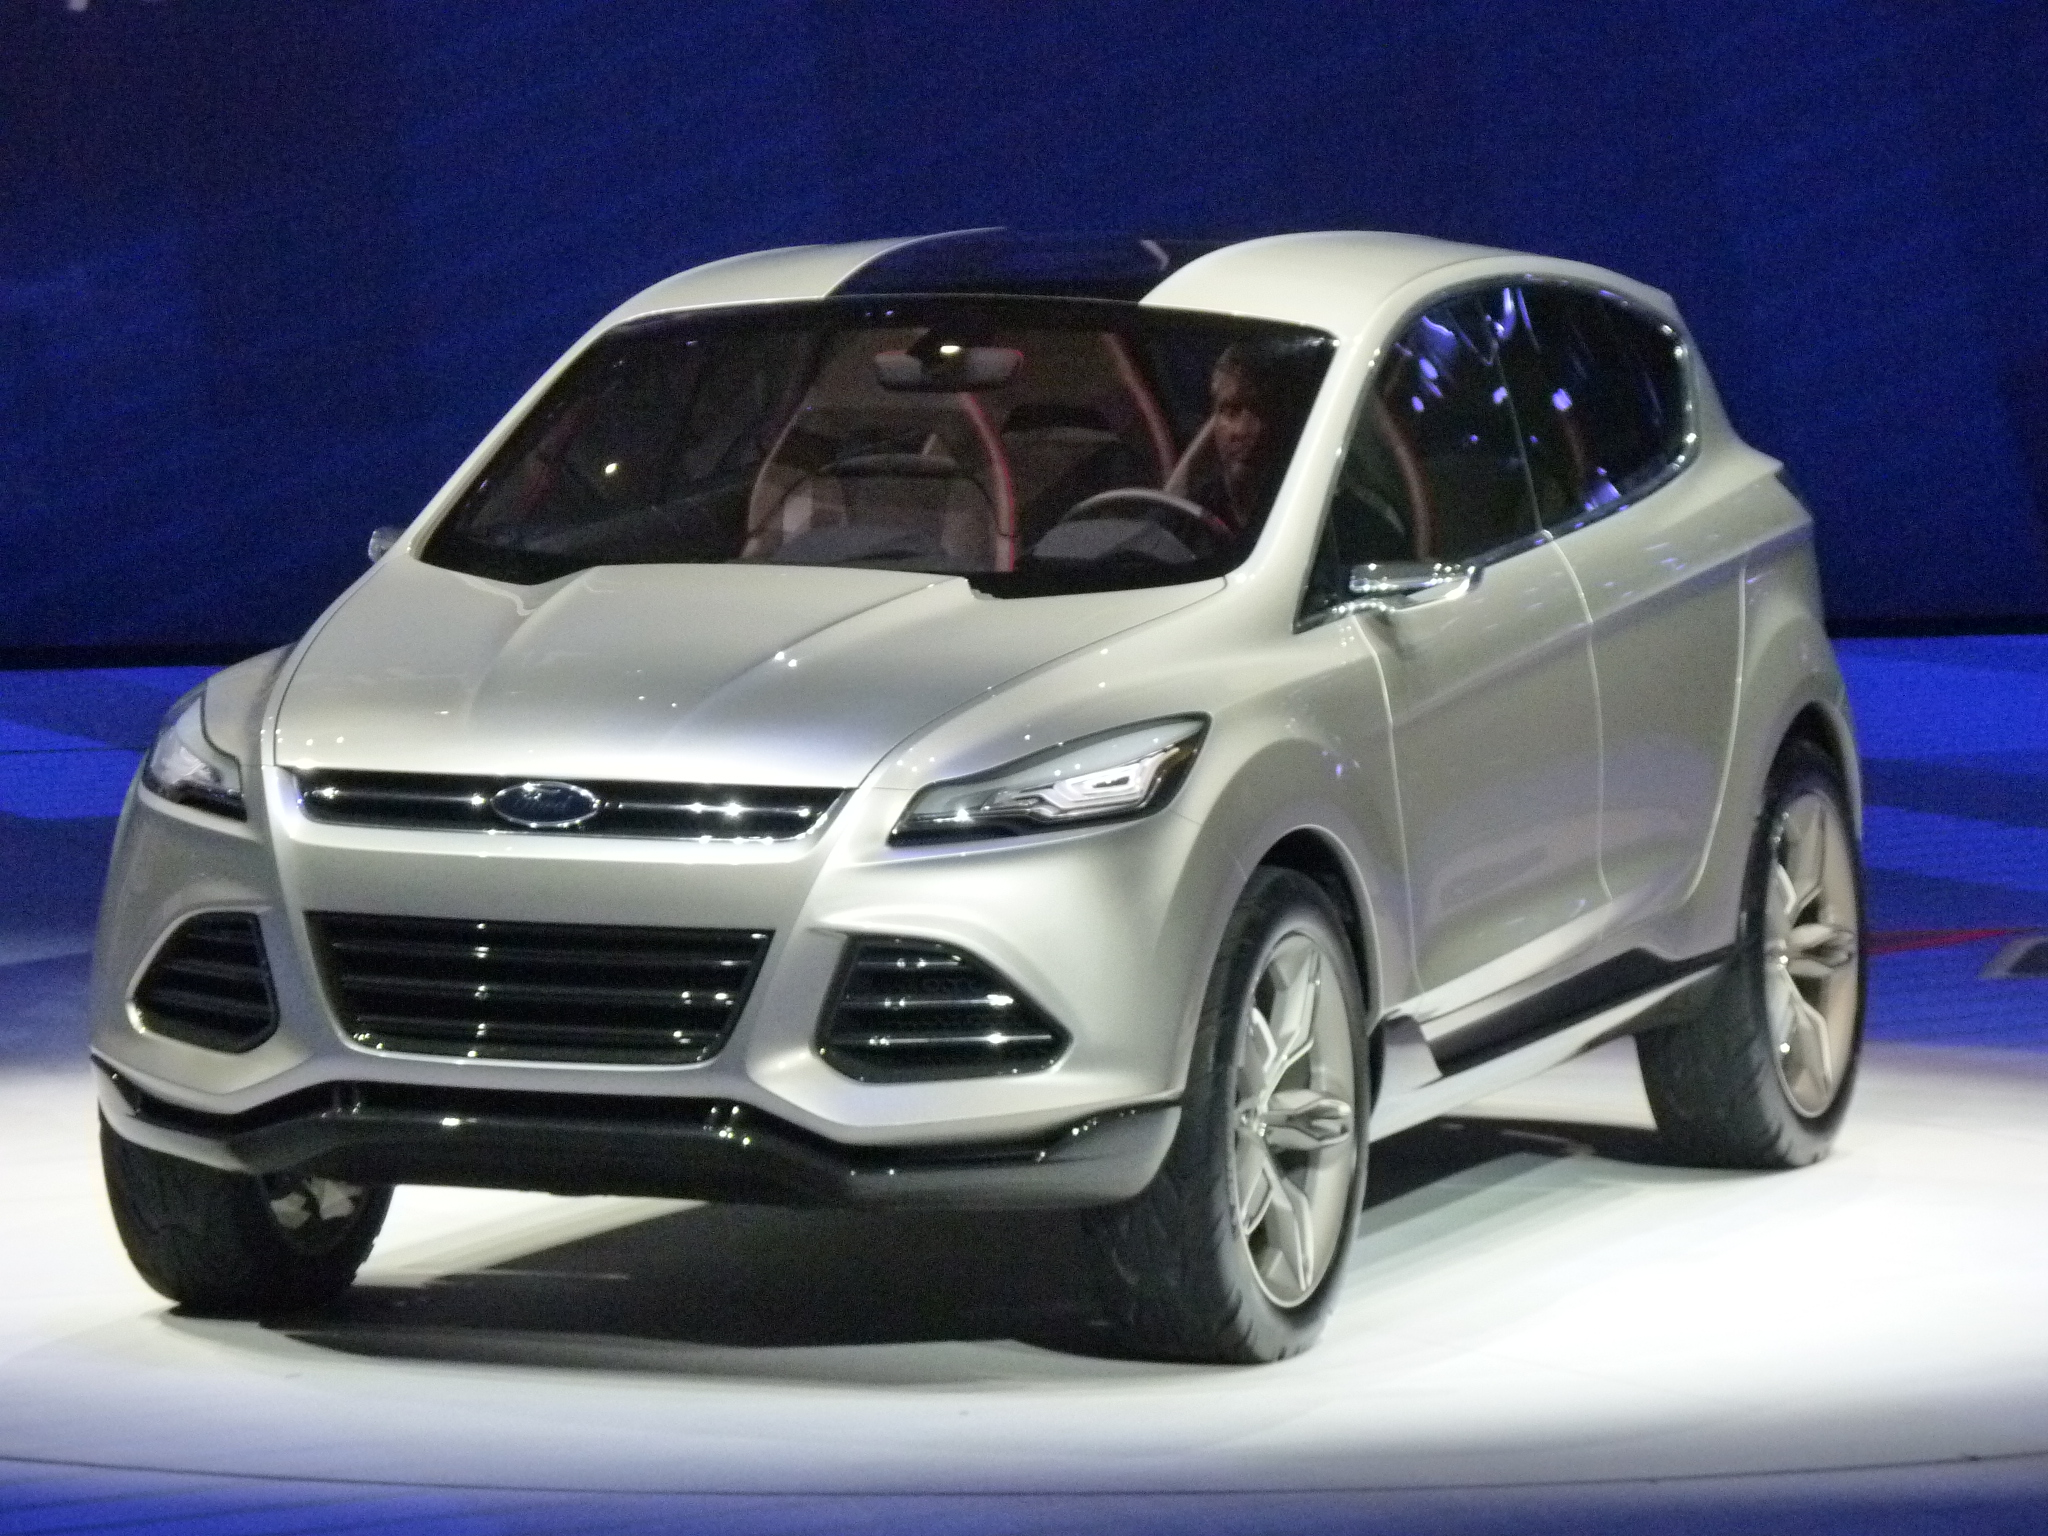 Ford Escape Electric Version Concept